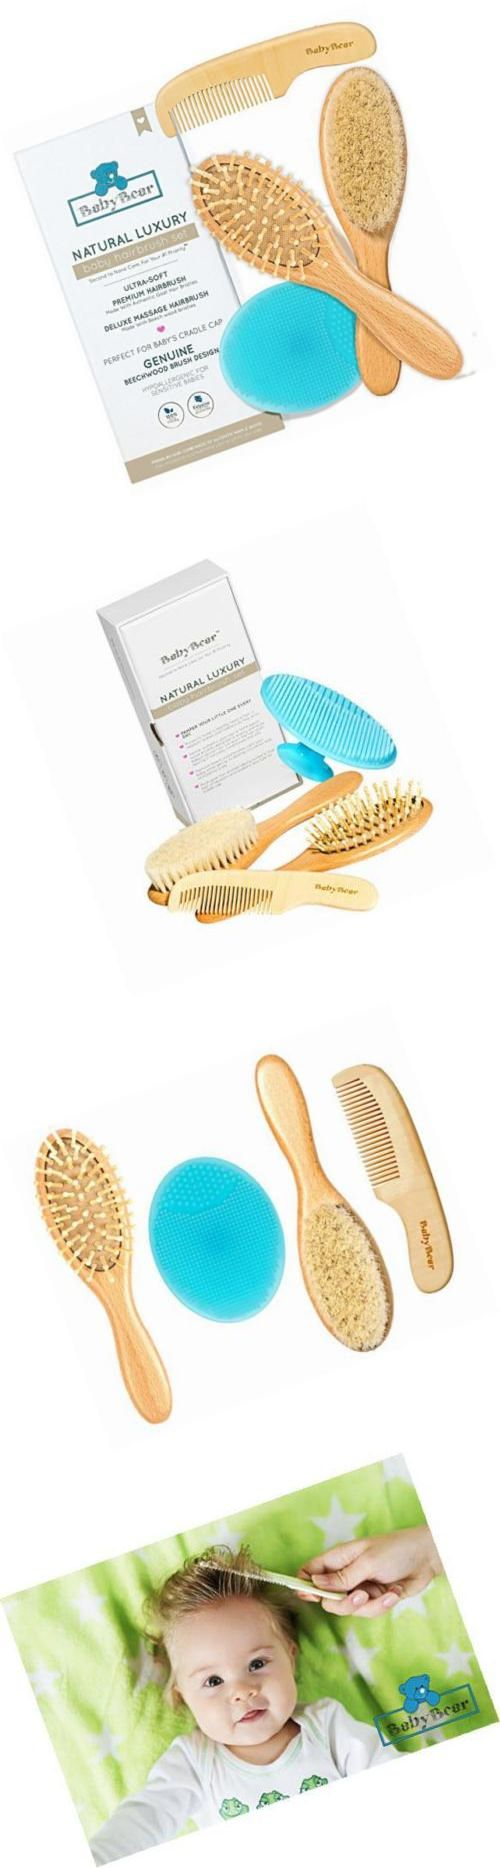 Health and Grooming 45452: Natural Luxury Baby Hair Brush And Comb Set ~ Newborn Hair Brush Natural ~ Ideal -> BUY IT NOW ONLY: $35.79 on eBay!